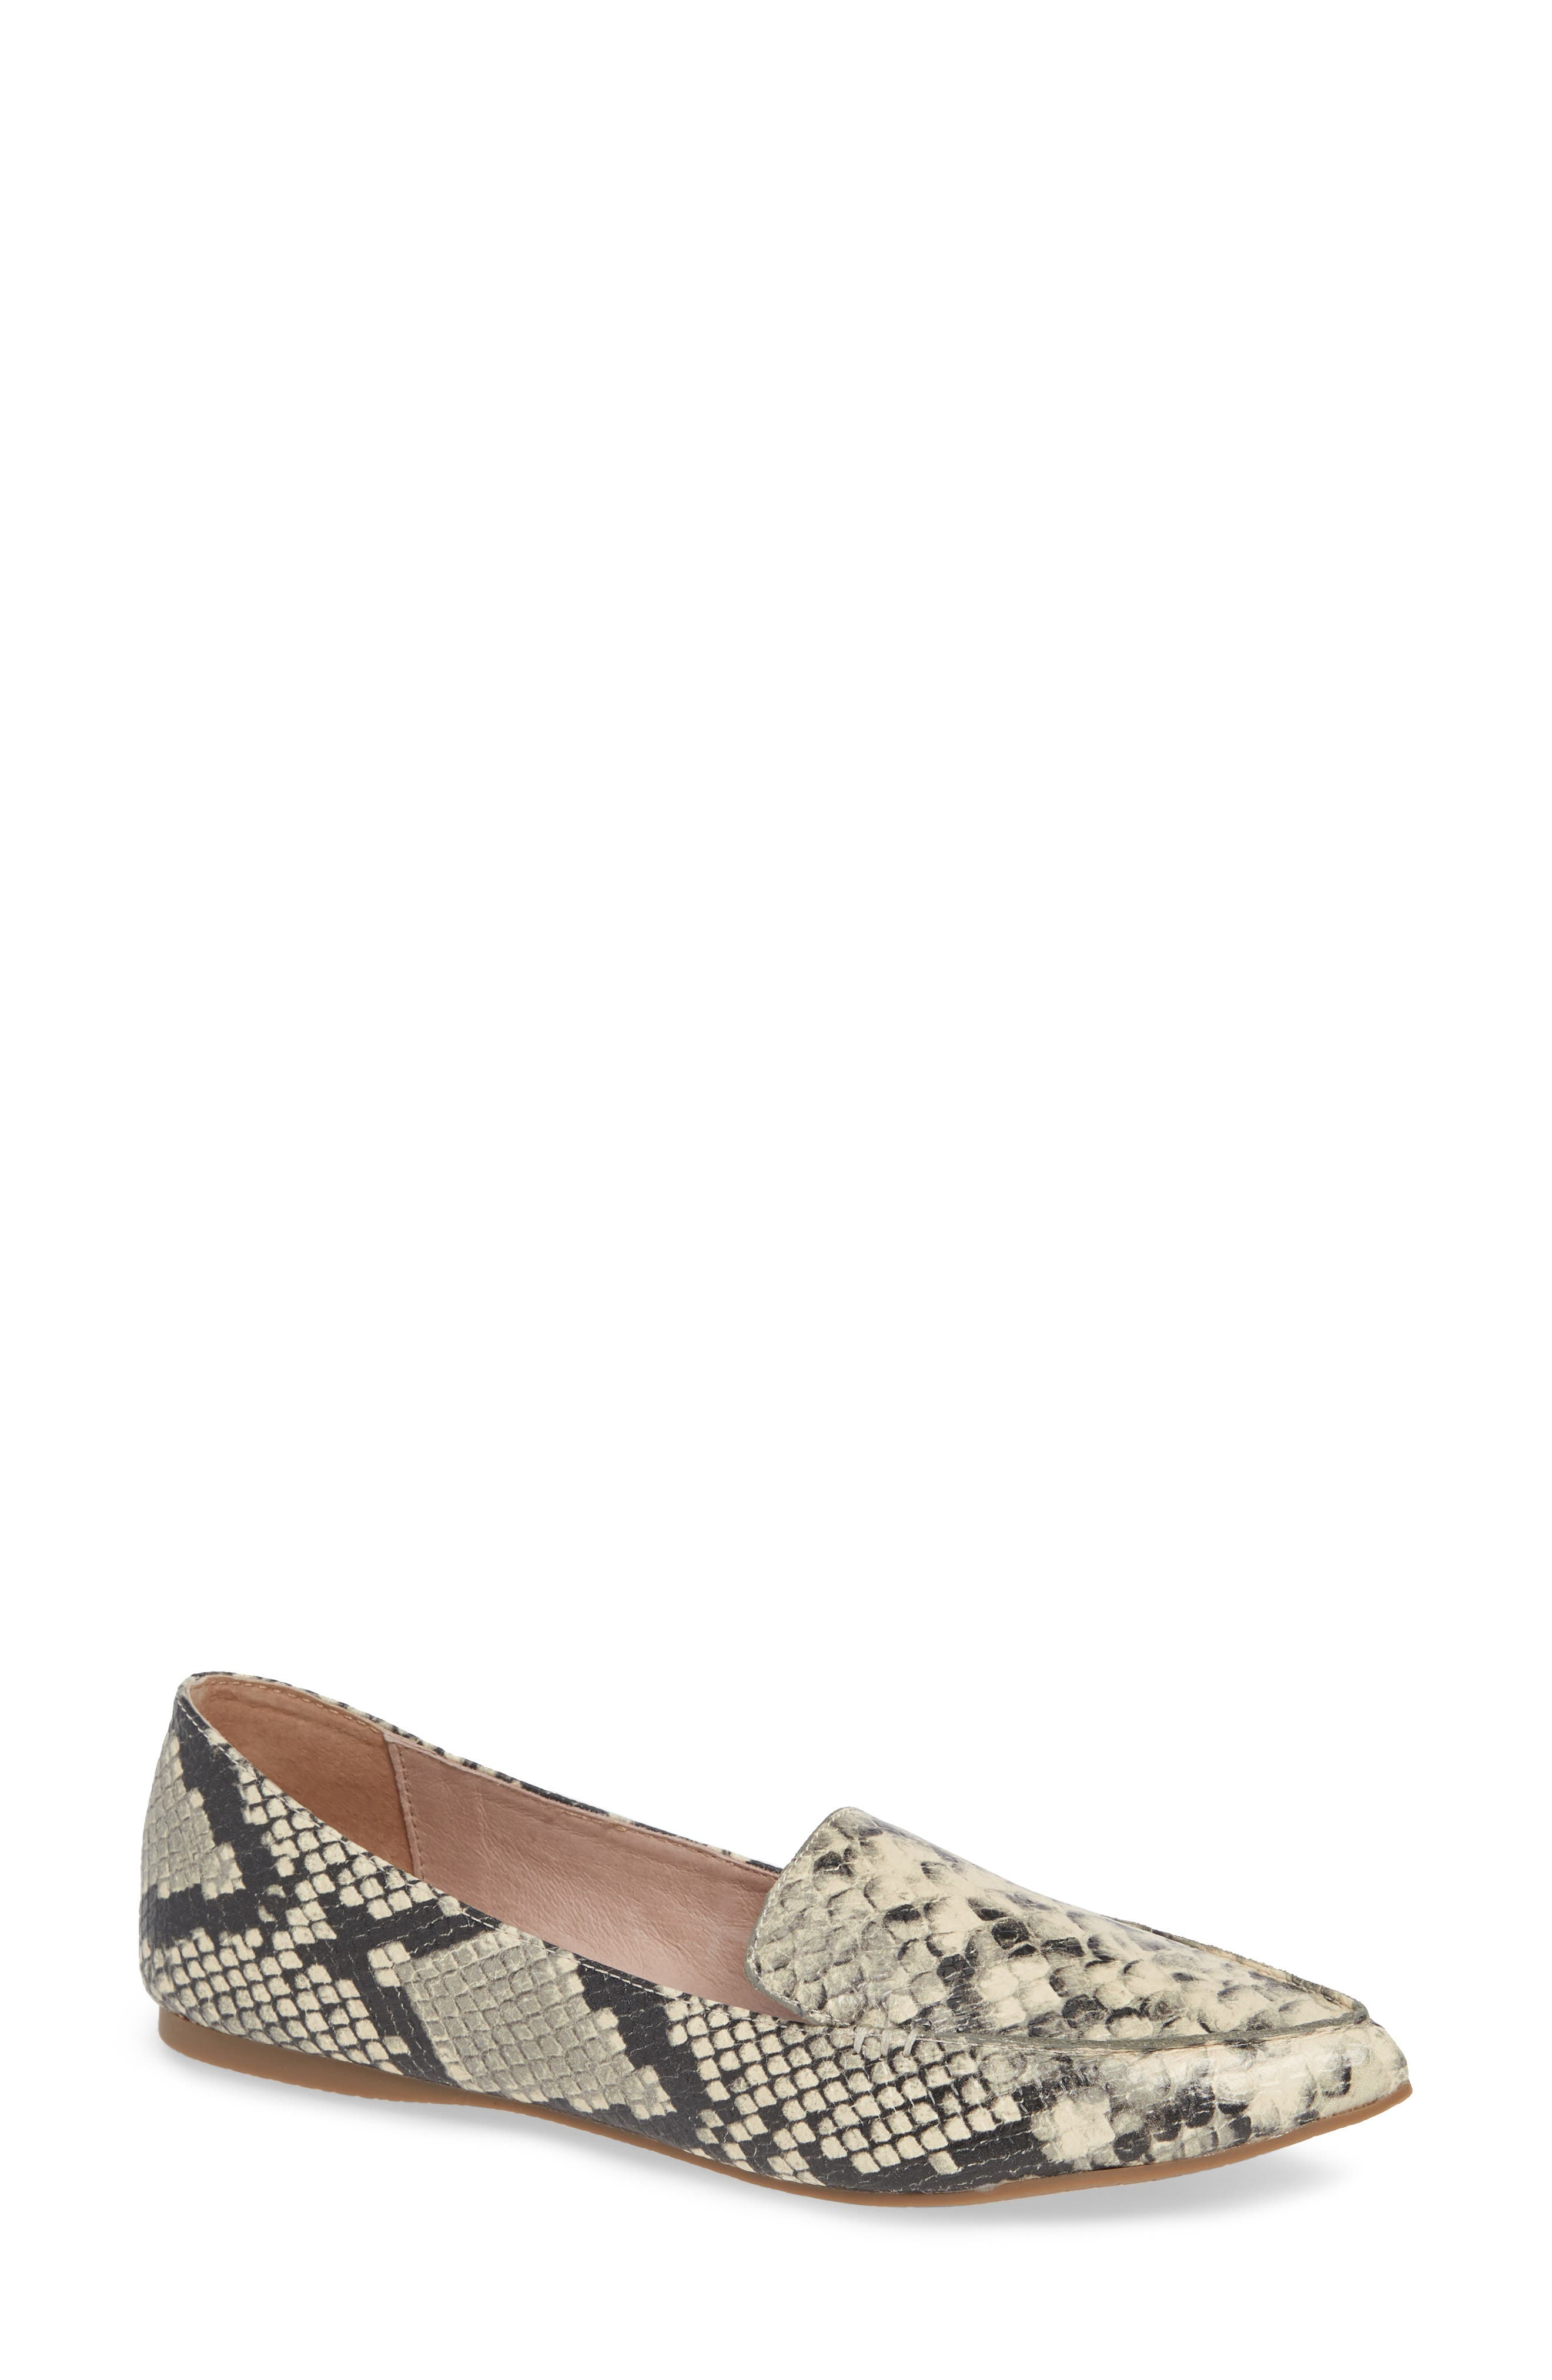 Feather Loafer Flat,                             Main thumbnail 1, color,                             SNAKE PRINT LEATHER